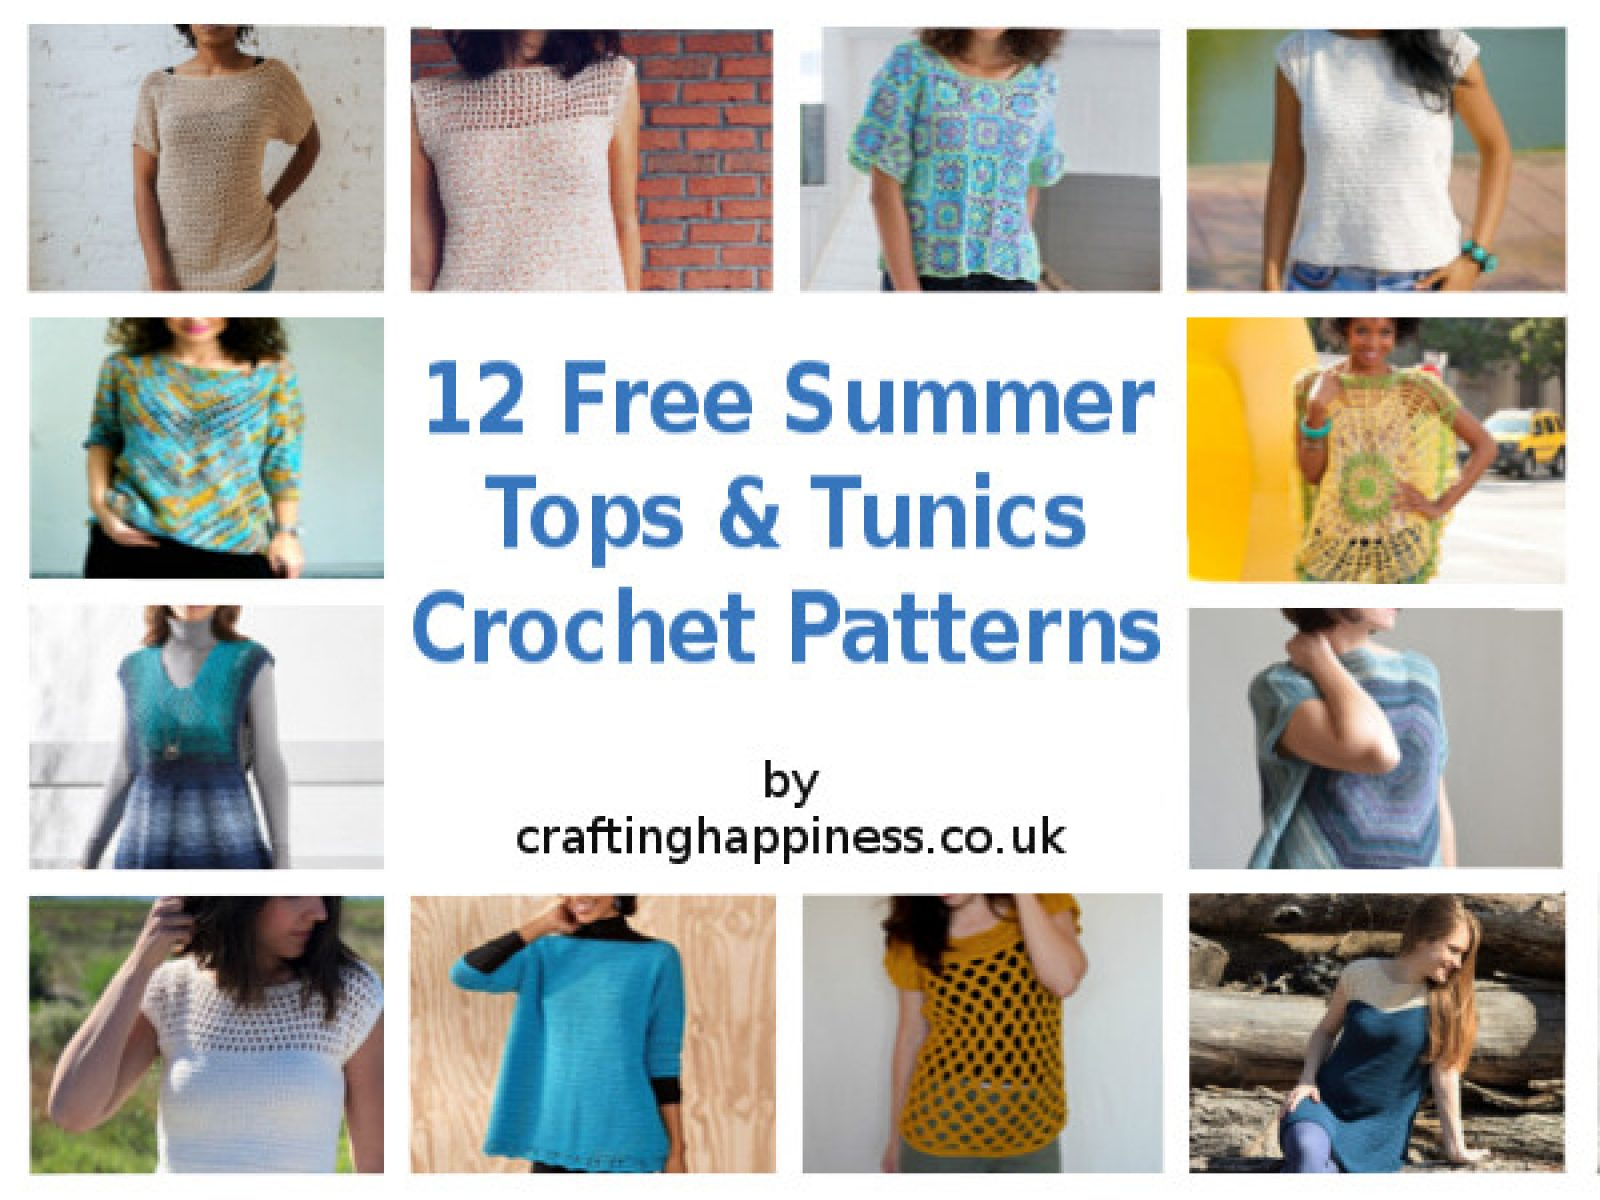 12 Free Summer Tops & Tunics Crochet Patterns